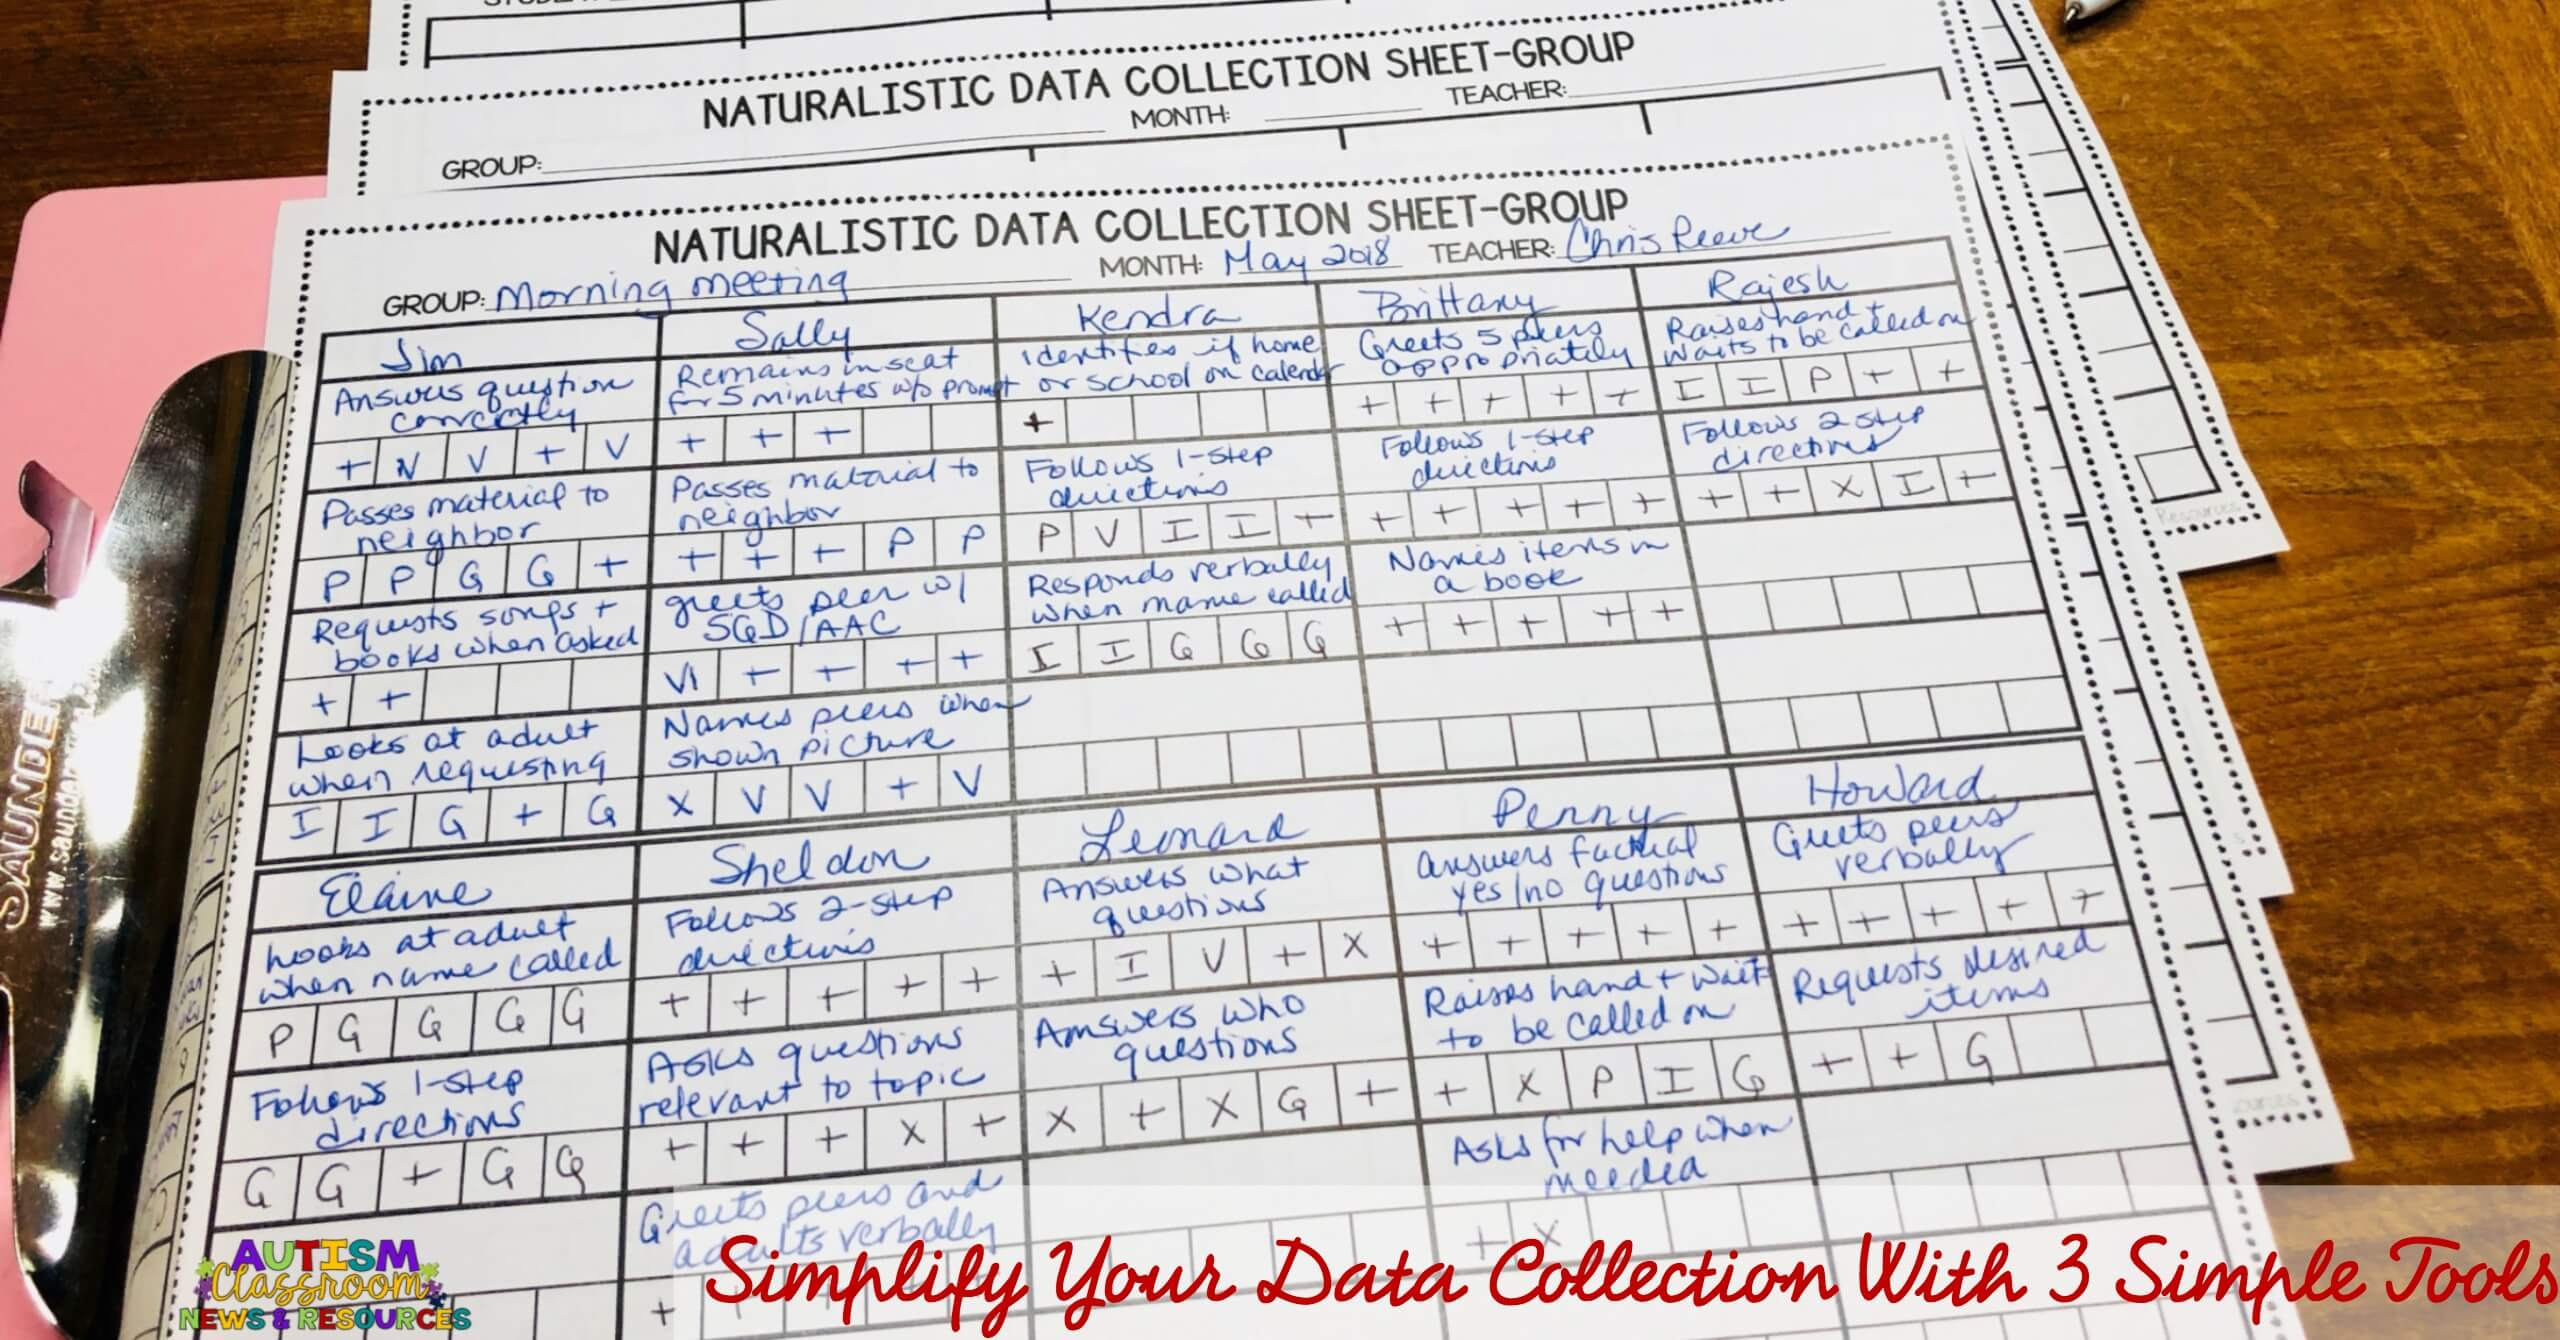 Group data sheets that can be used to track progress of multiple students with data samples.